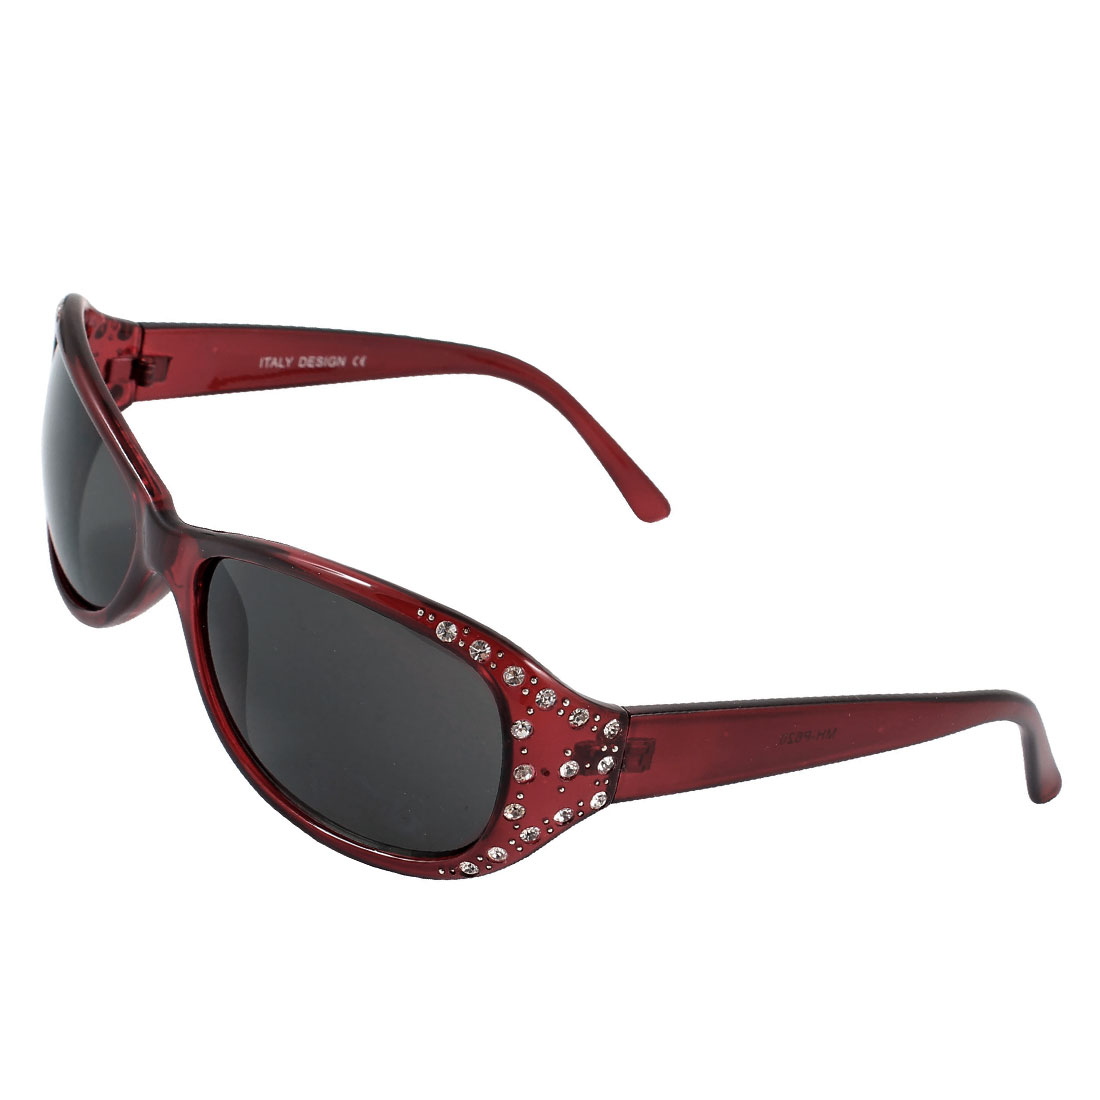 Lady Dark Red Plastic Arm Single Bridge Black Lens Sunglasses Sun Glasses